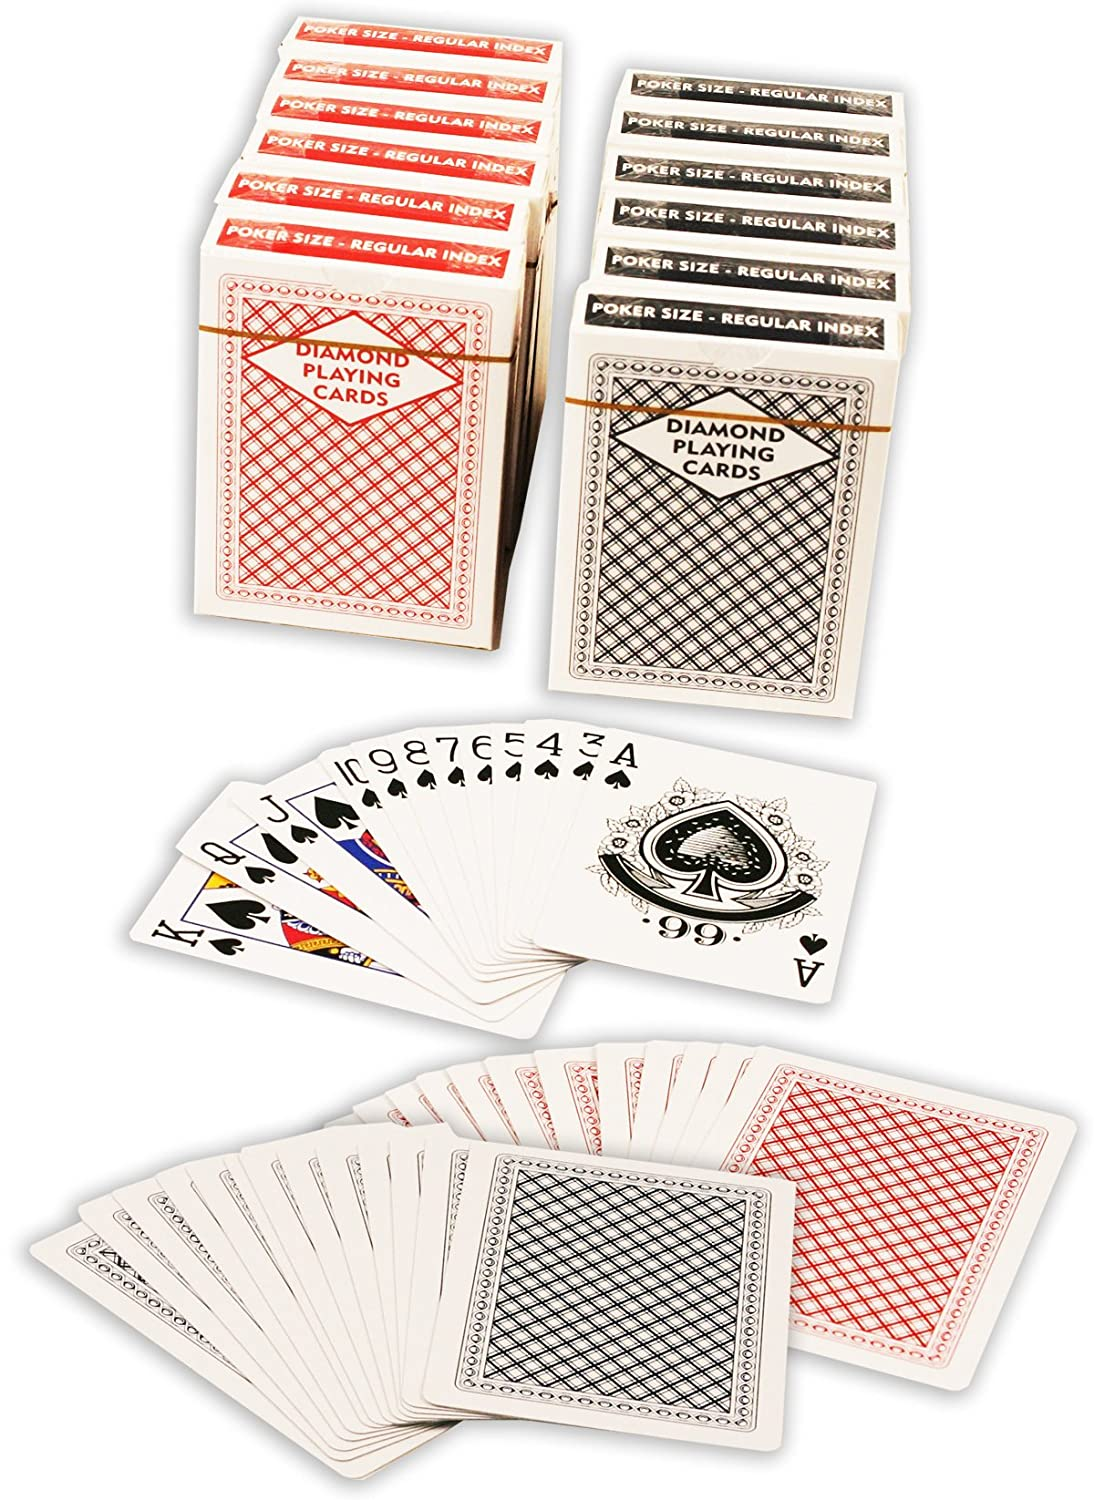 Amazon.com: Diamond Playing Cards: 12 Decks (6 Red, 6 Blue) Poker ...